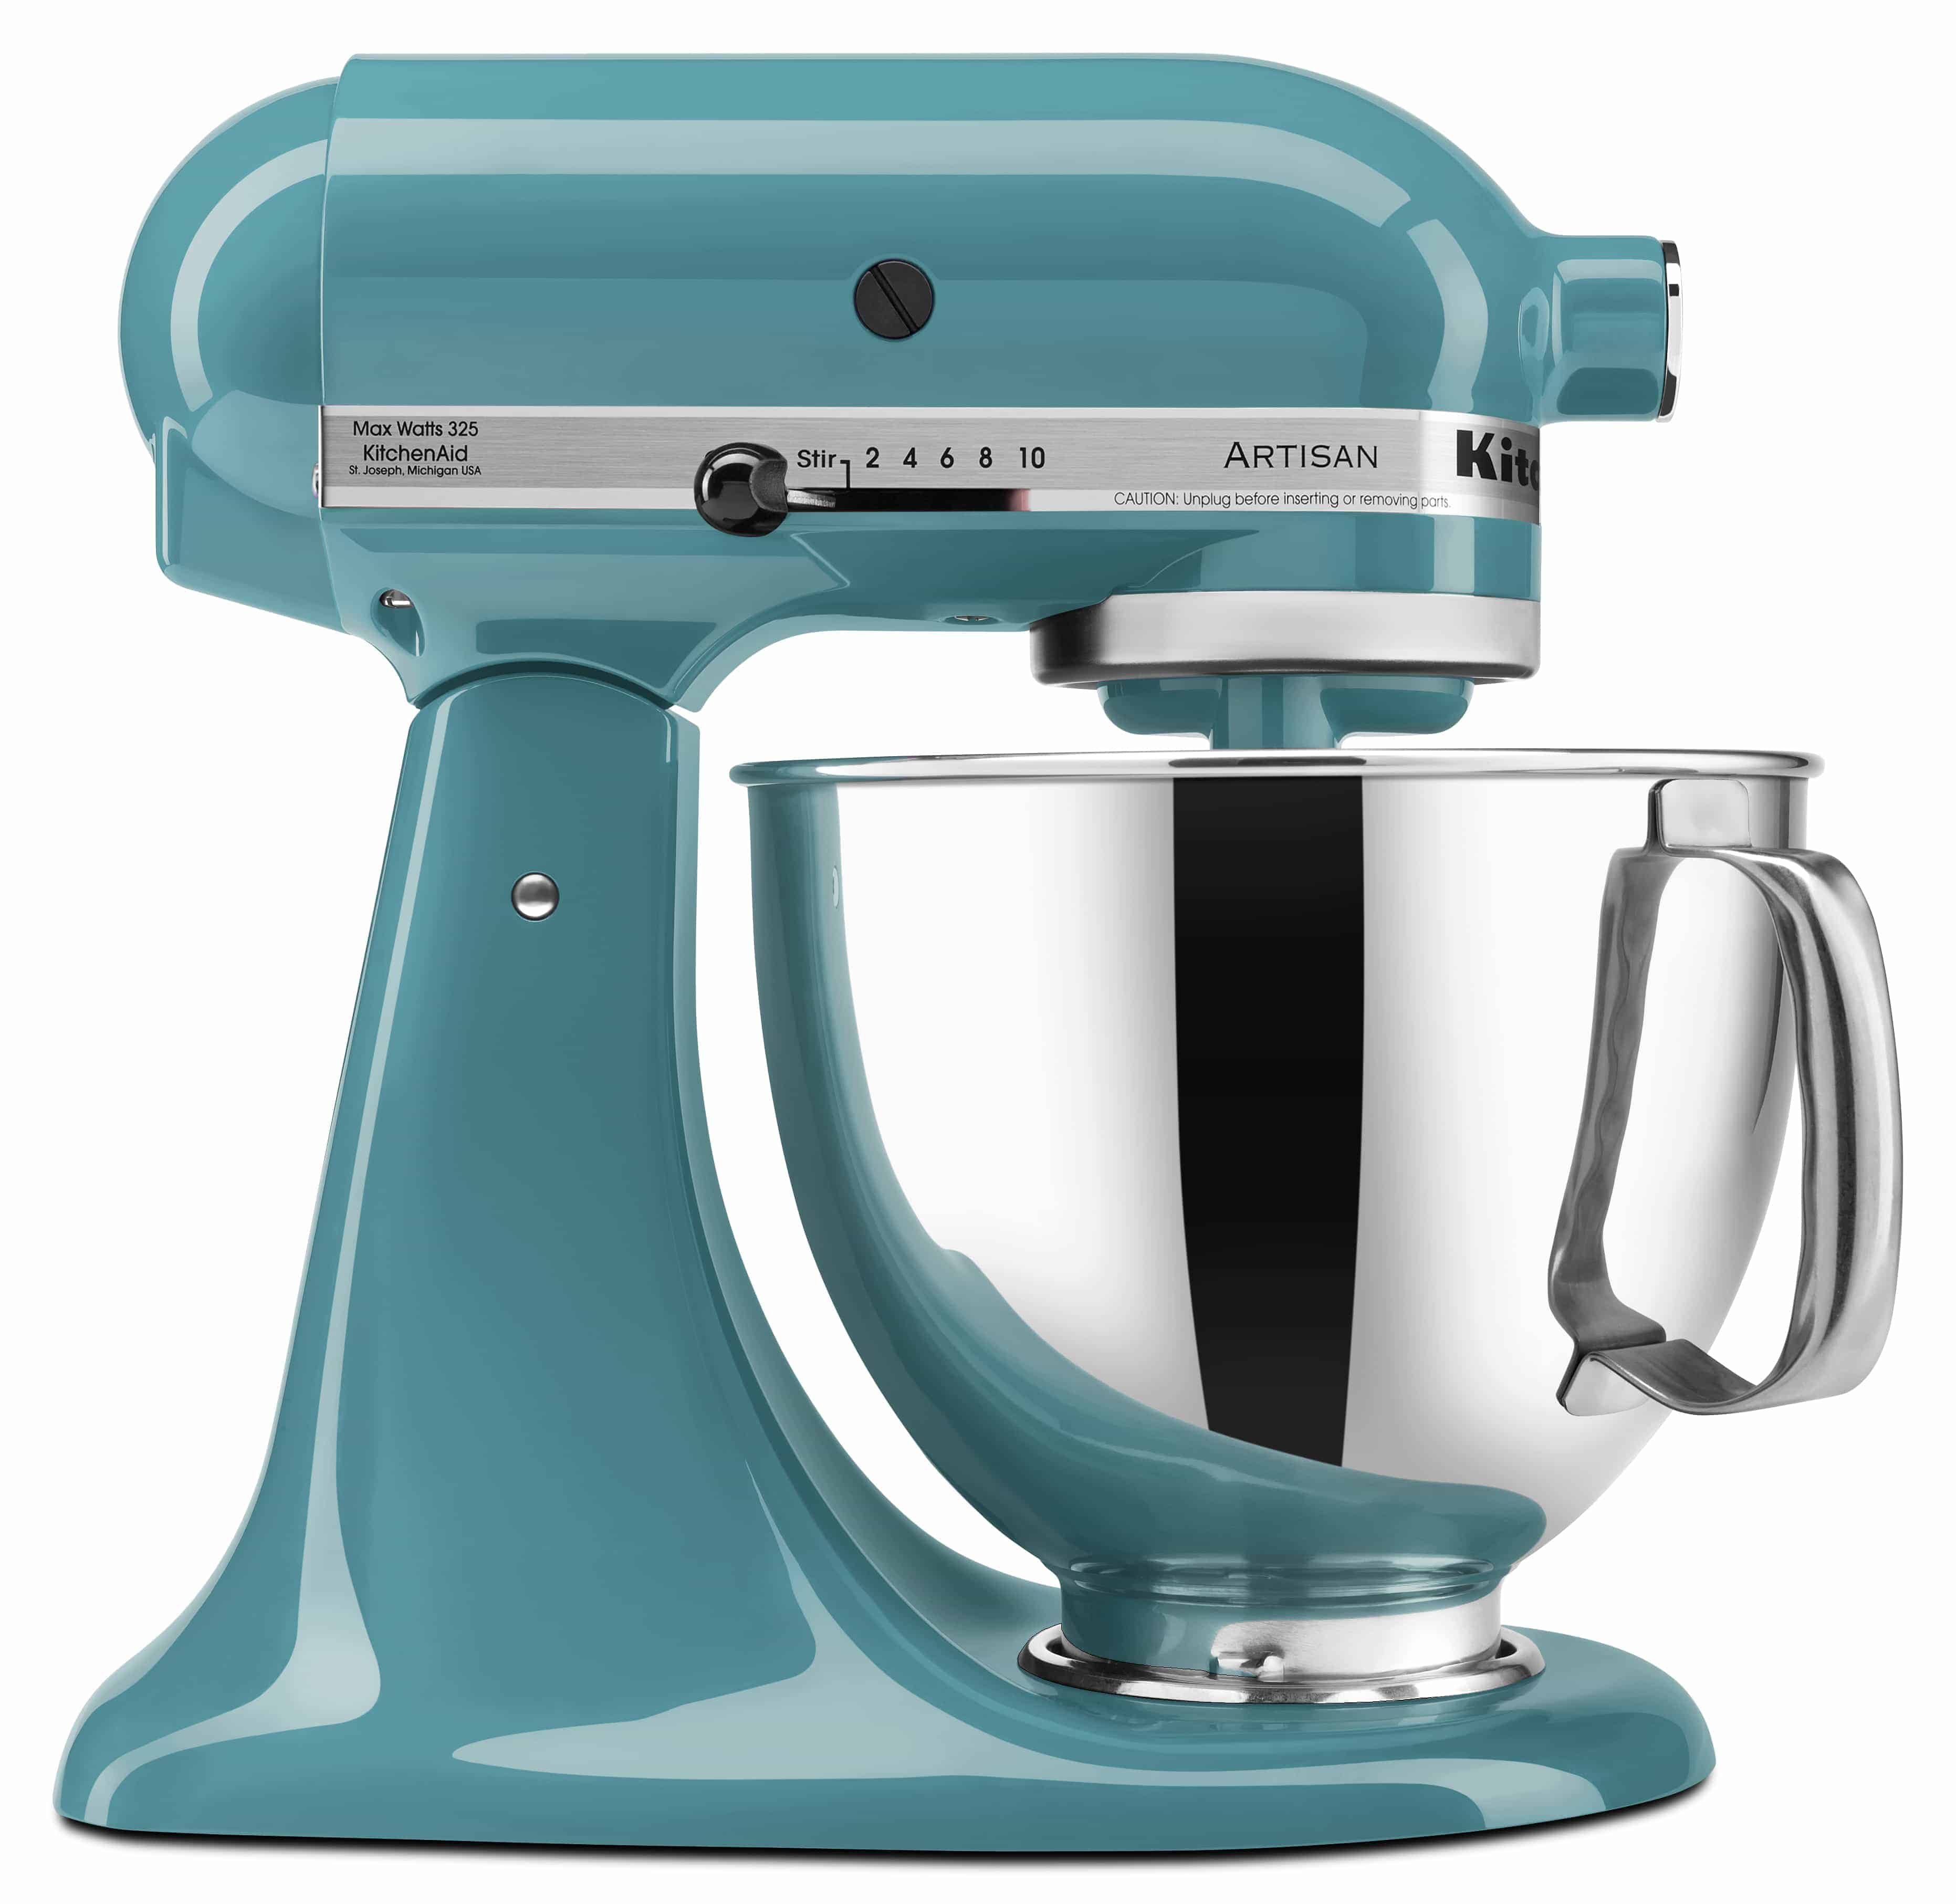 Compare Kitchenaid Classic Plus Vs Kitchenaid Artisan